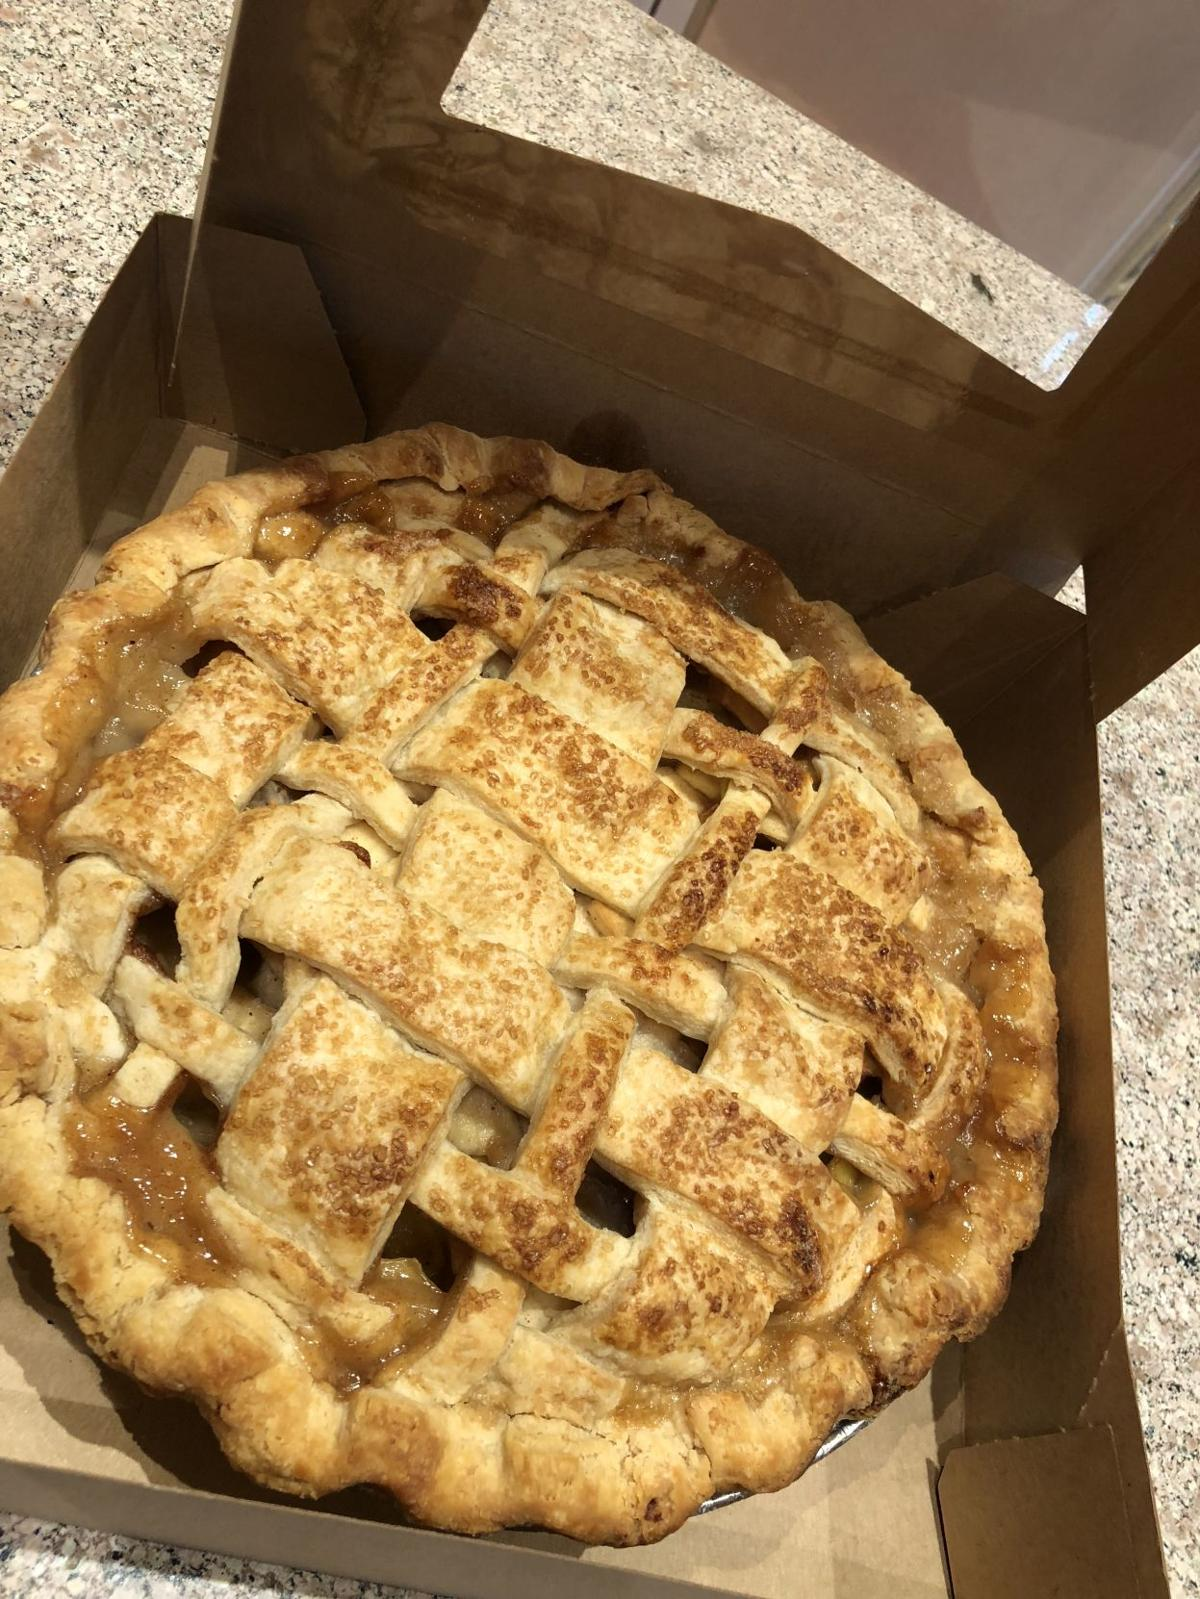 Colorado Springs baker earns gold stars galore for her delicious pies from her food truck and pie club